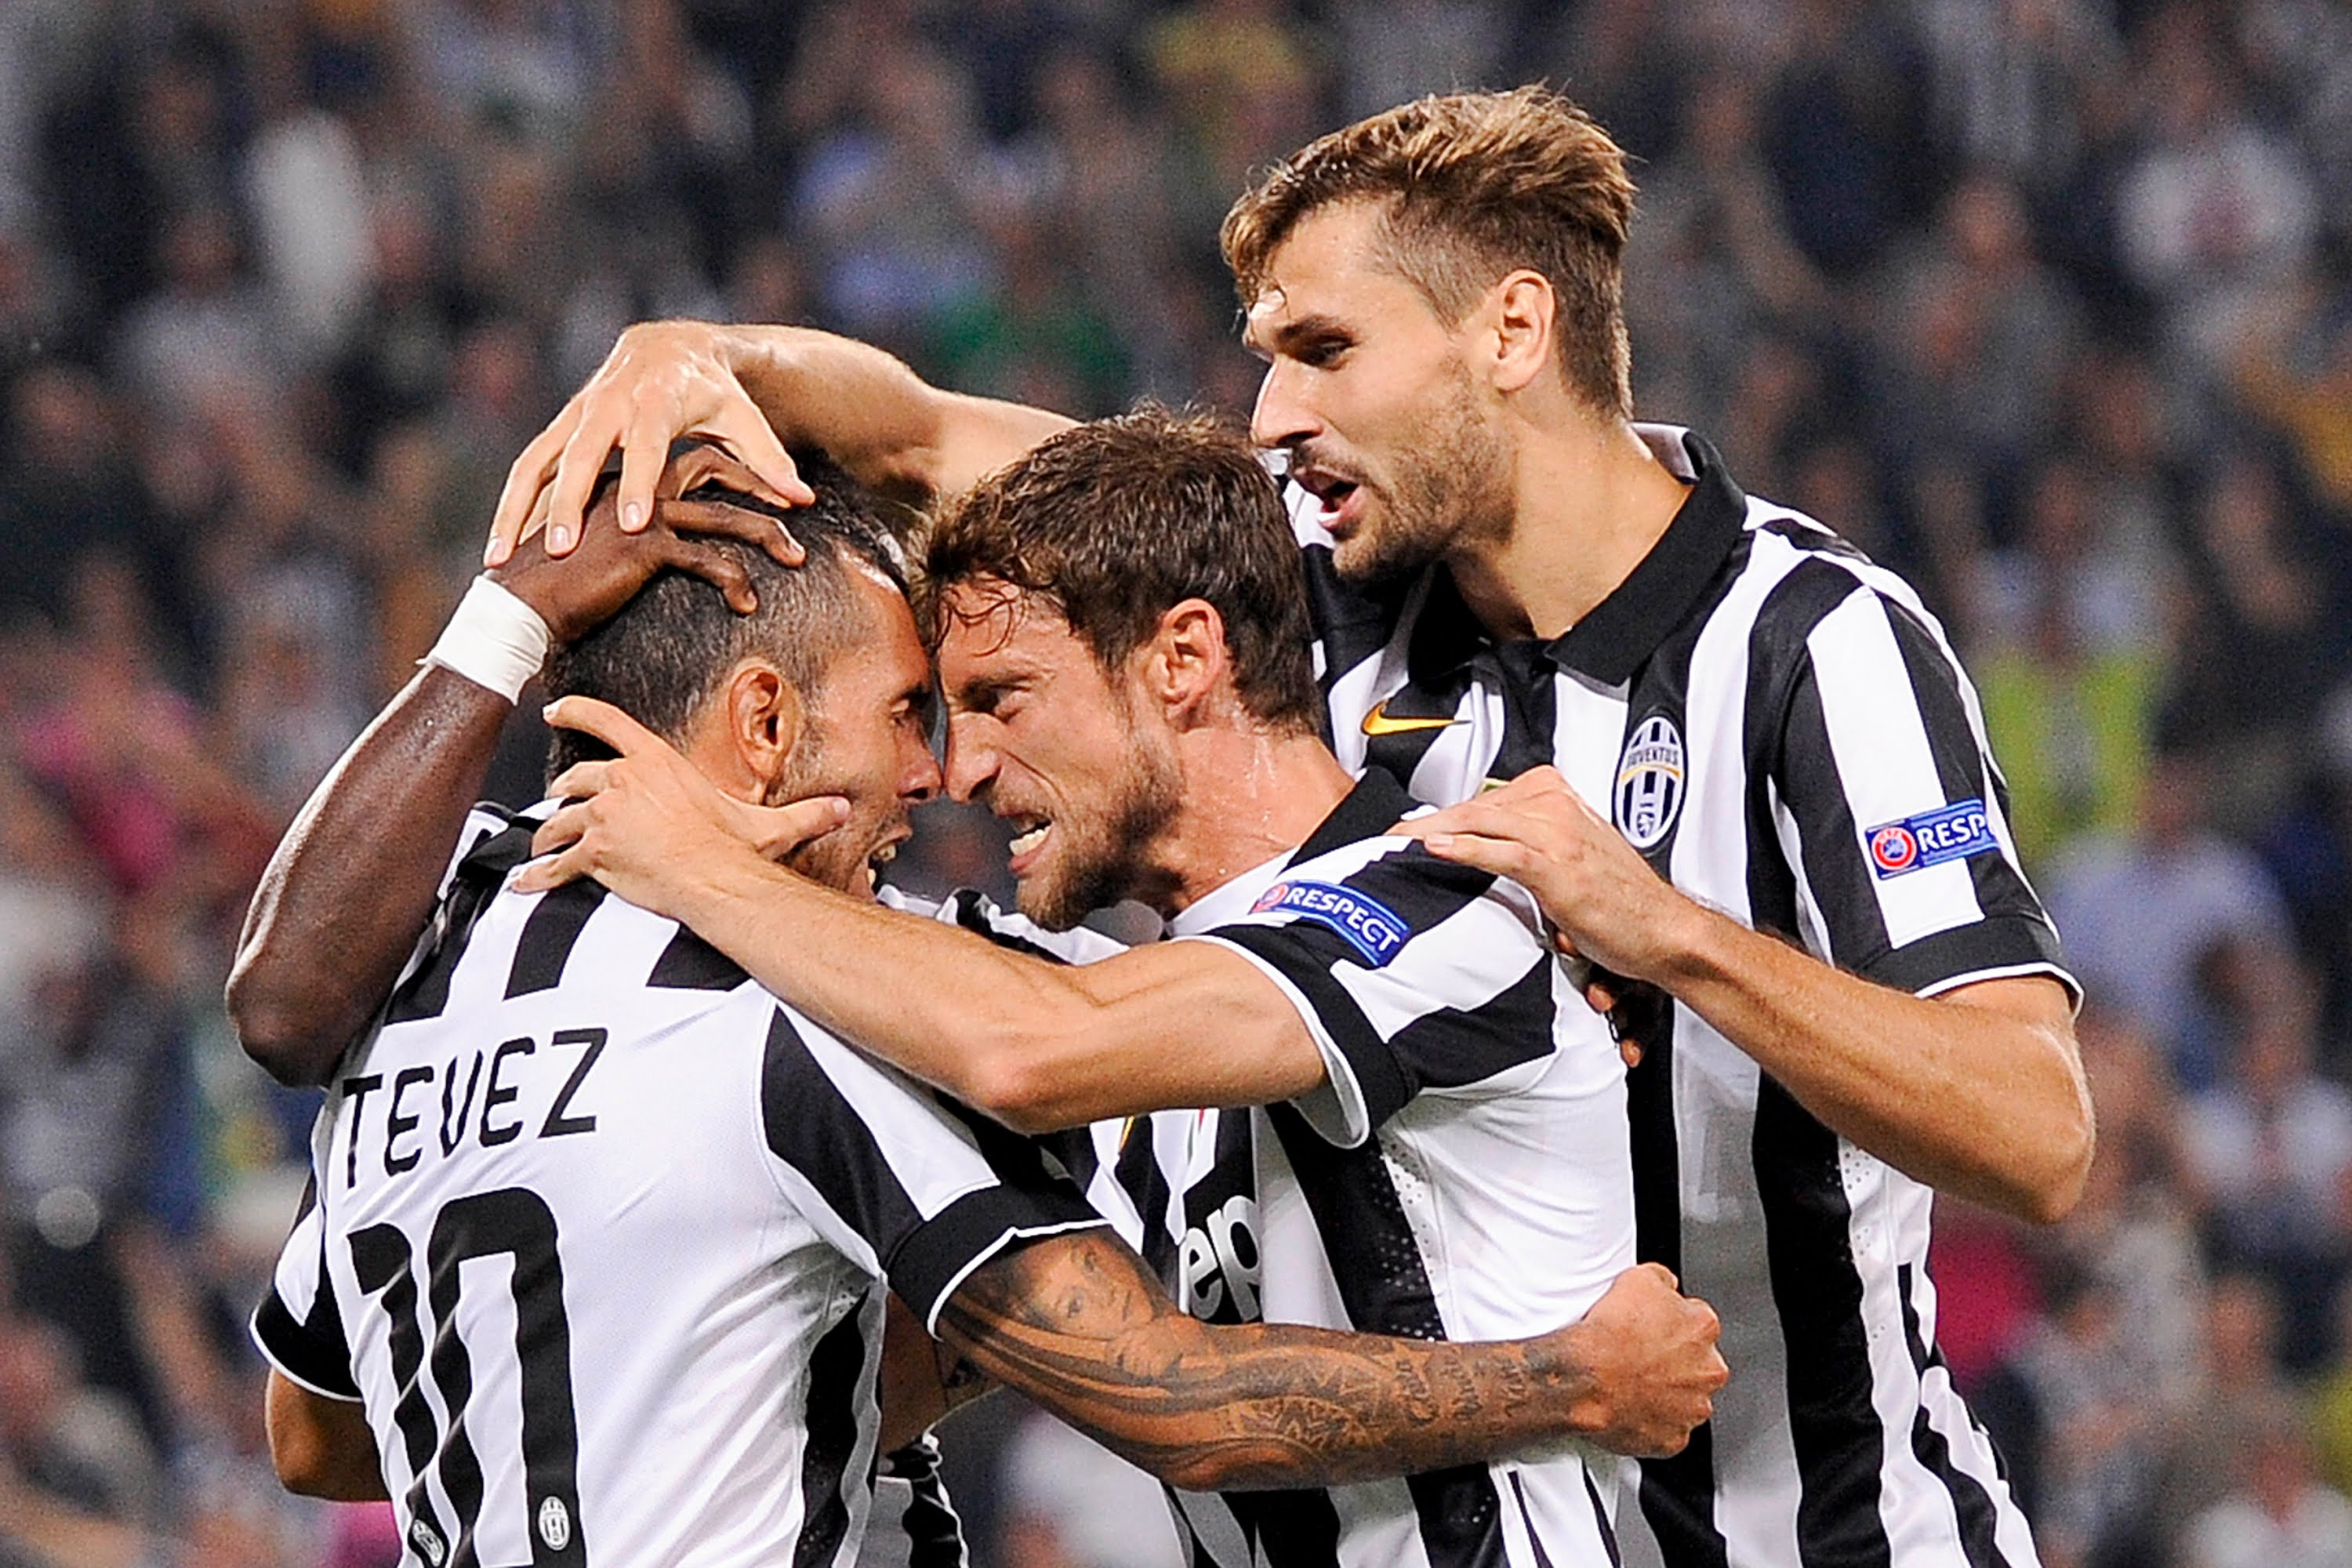 Juventus, un anno in vetta - A year at the top